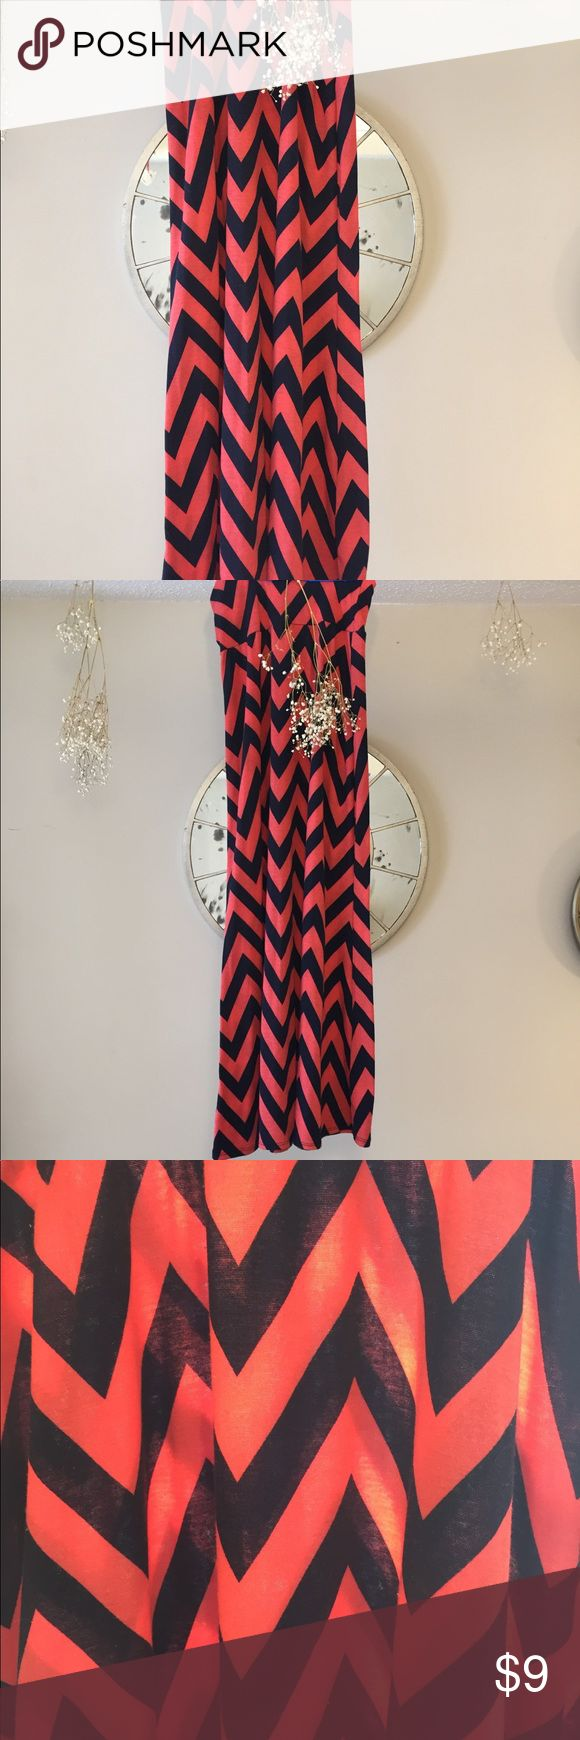 "Beautiful coral and Navy Maxi skirt Beautiful coral and navy maxi skirt. Size small. Fits 5ft through 5'9"". Soft lovable material. Skirts Maxi"